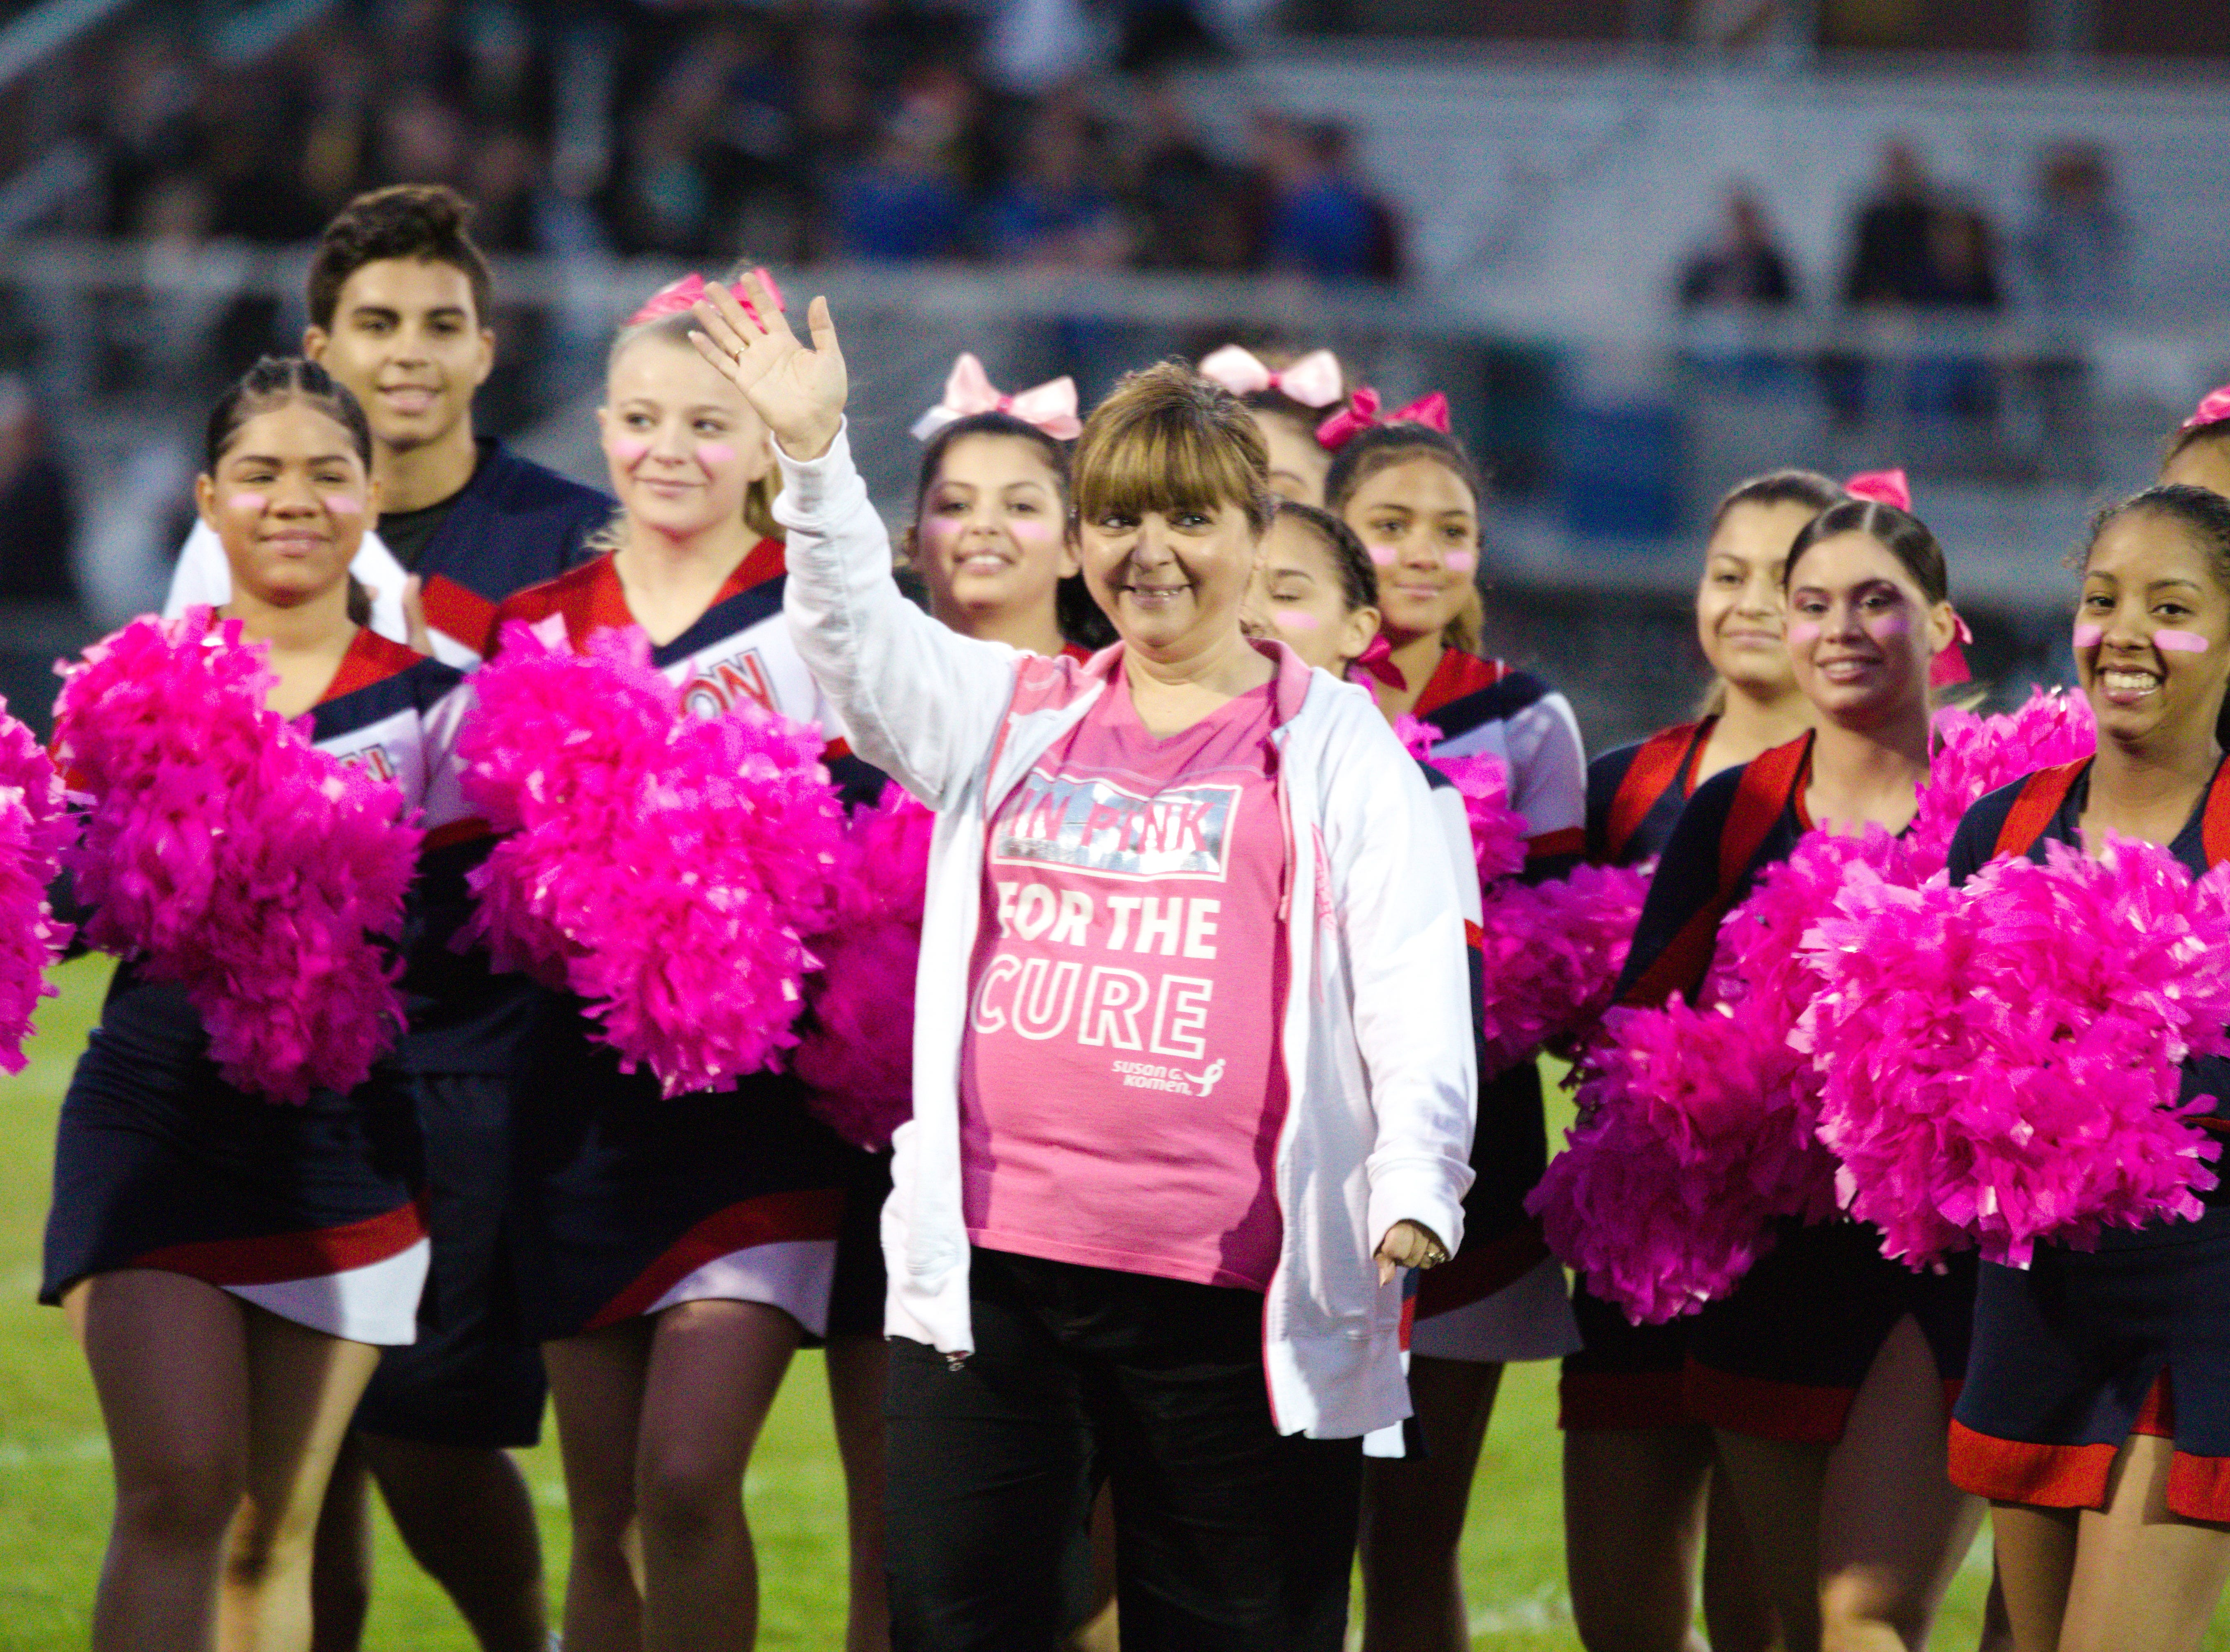 Lebanon cheerleaders brought awareness to the fight against breast cancer on Friday night.